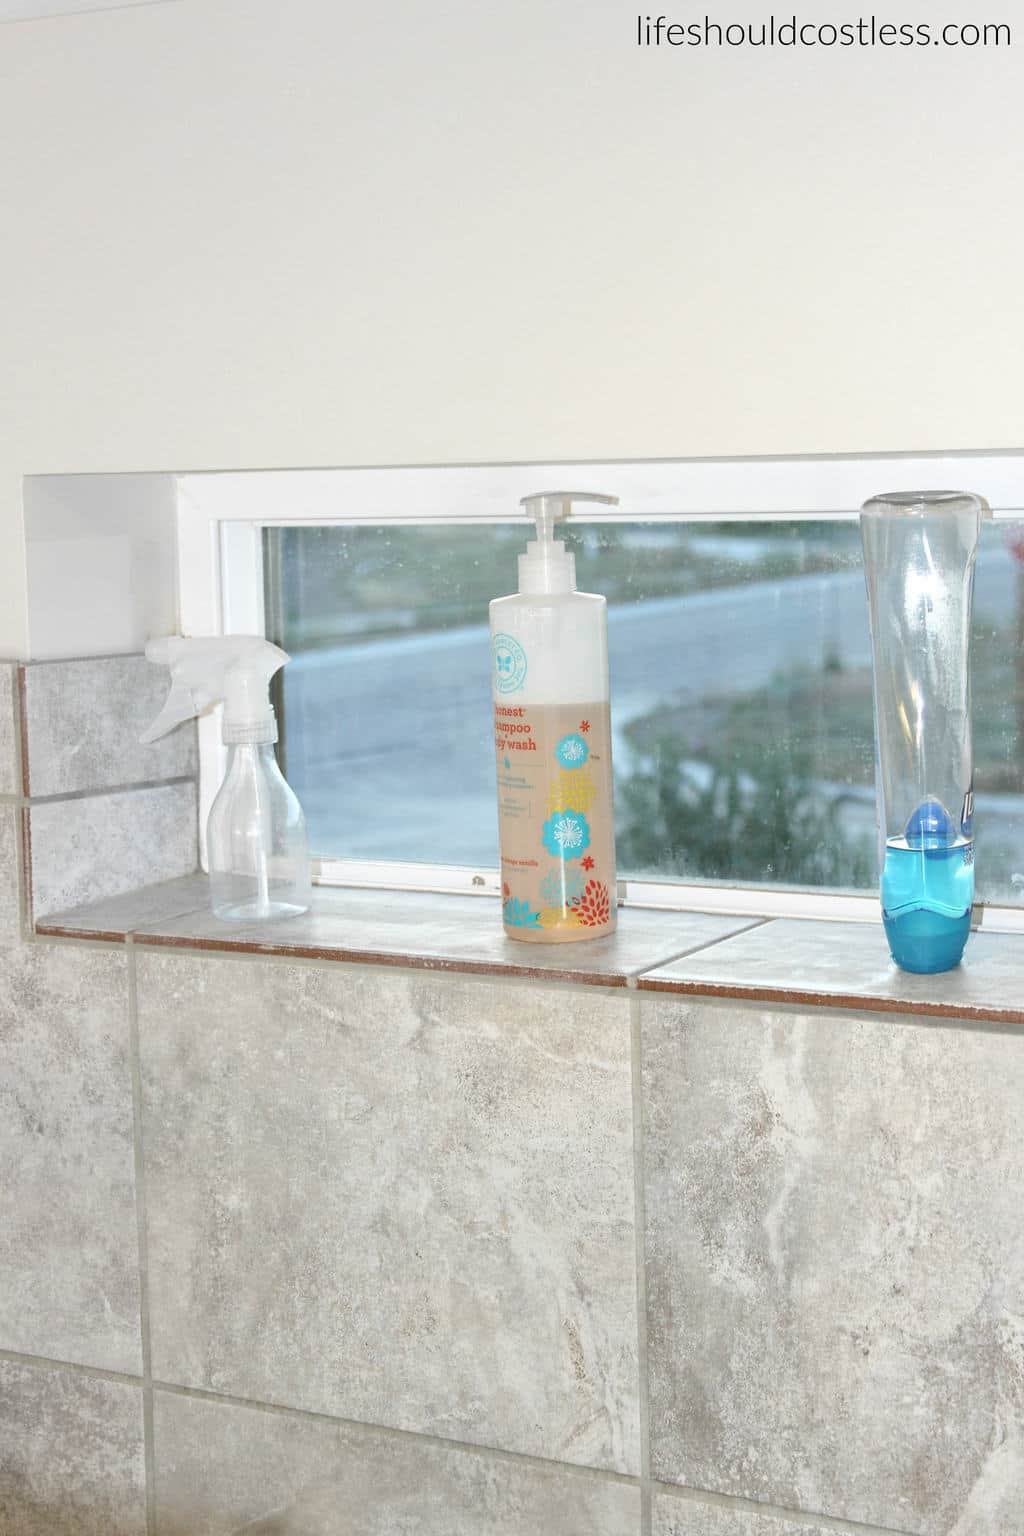 DIY Privacy Glass, Before. {lifeshouldcostless.com}